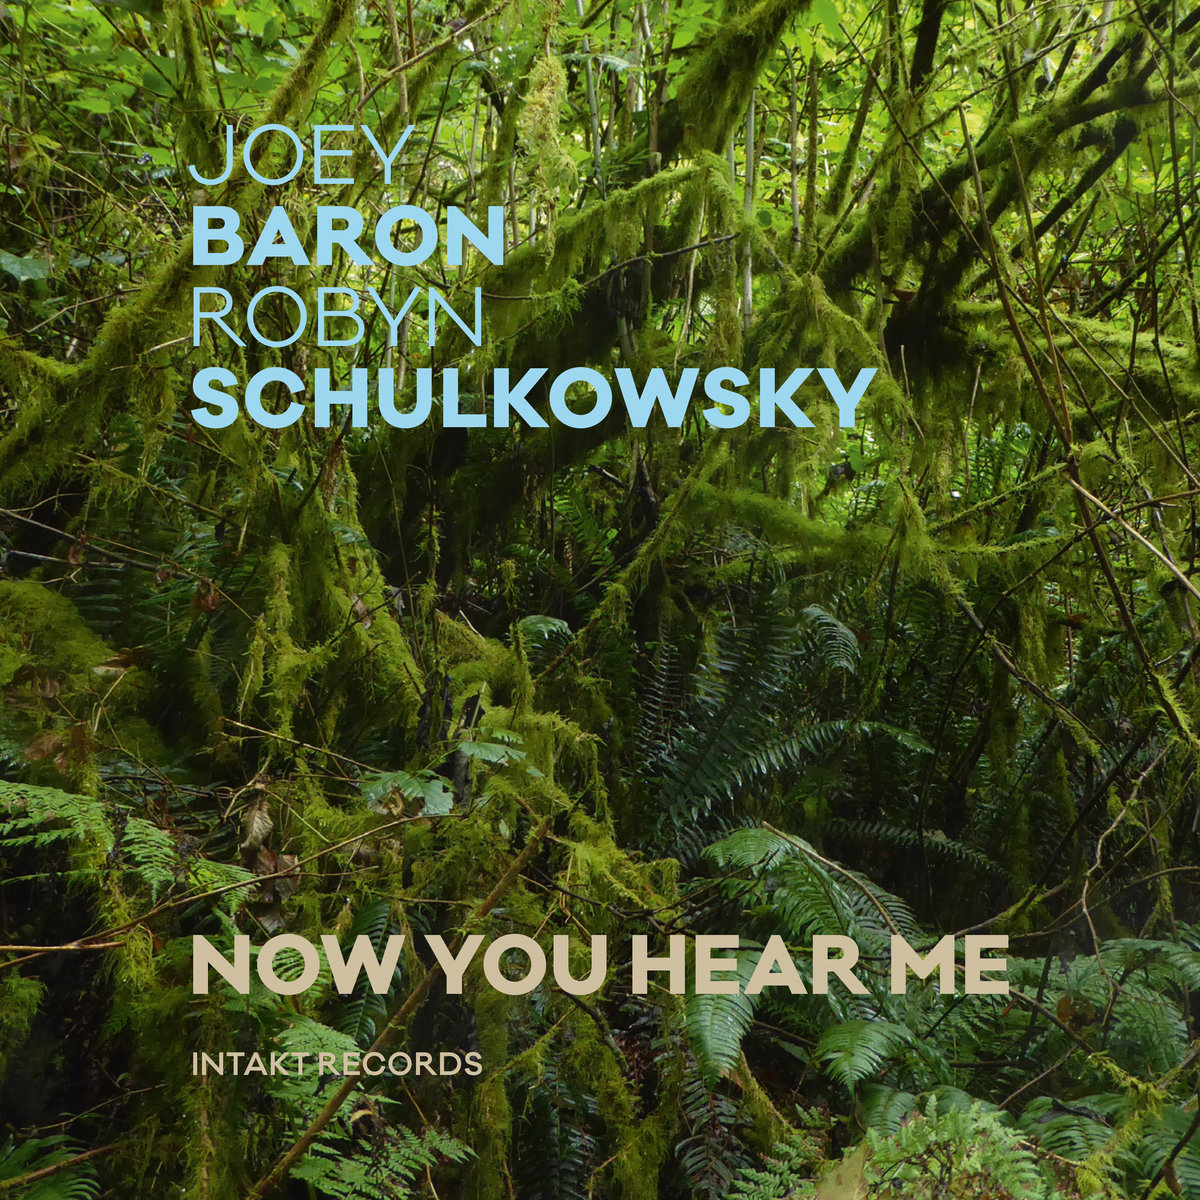 Joey Baron, Robyn Schulkowsky<br/>Now You Hear Me<br/>Intakt, 2018